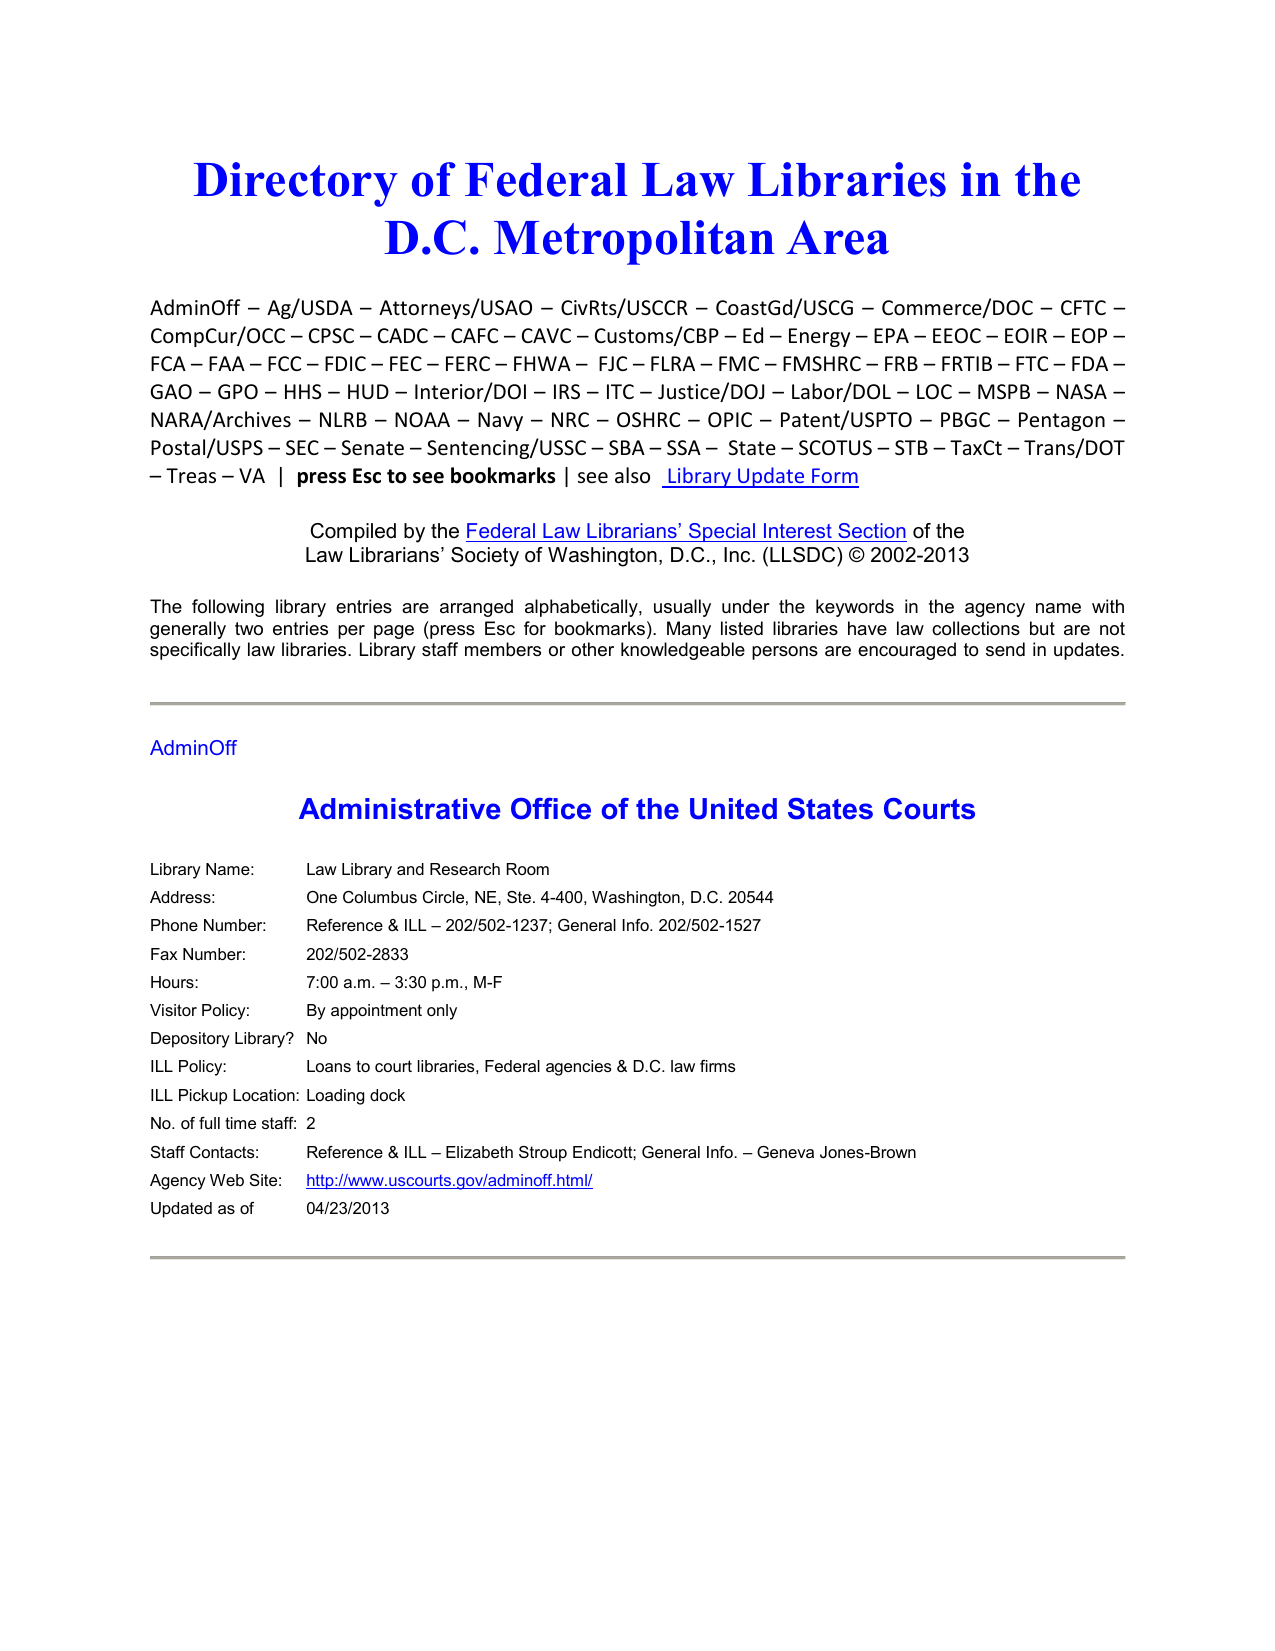 Directory of Federal Law Libraries in the D C  Metropolitan Area